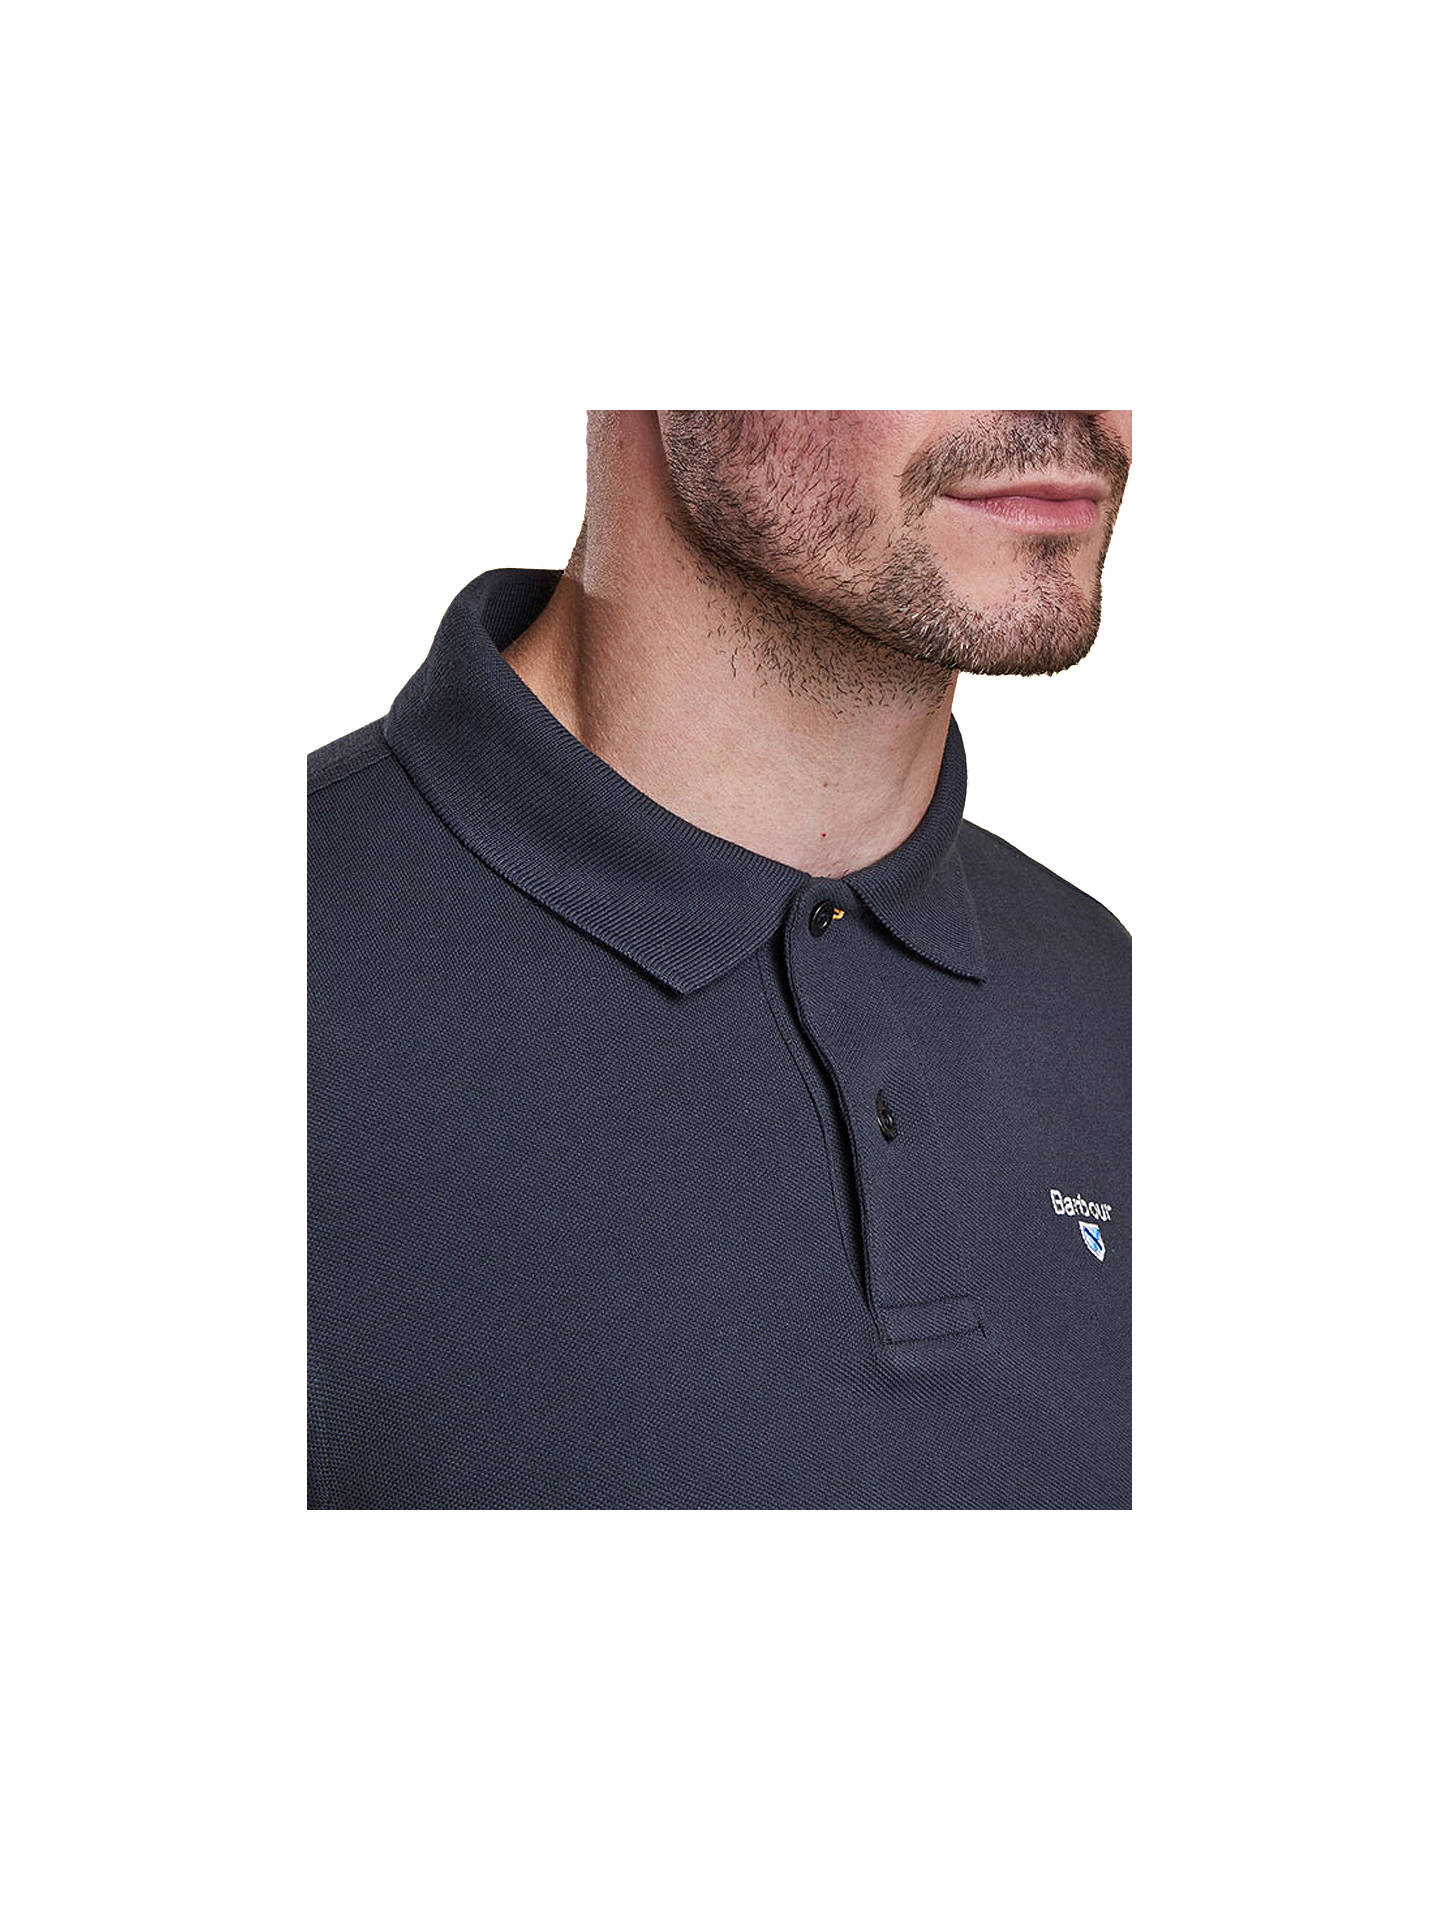 BuyBarbour Lifestyle Sports Cotton Short Sleeve Polo Shirt, Navy, S Online at johnlewis.com